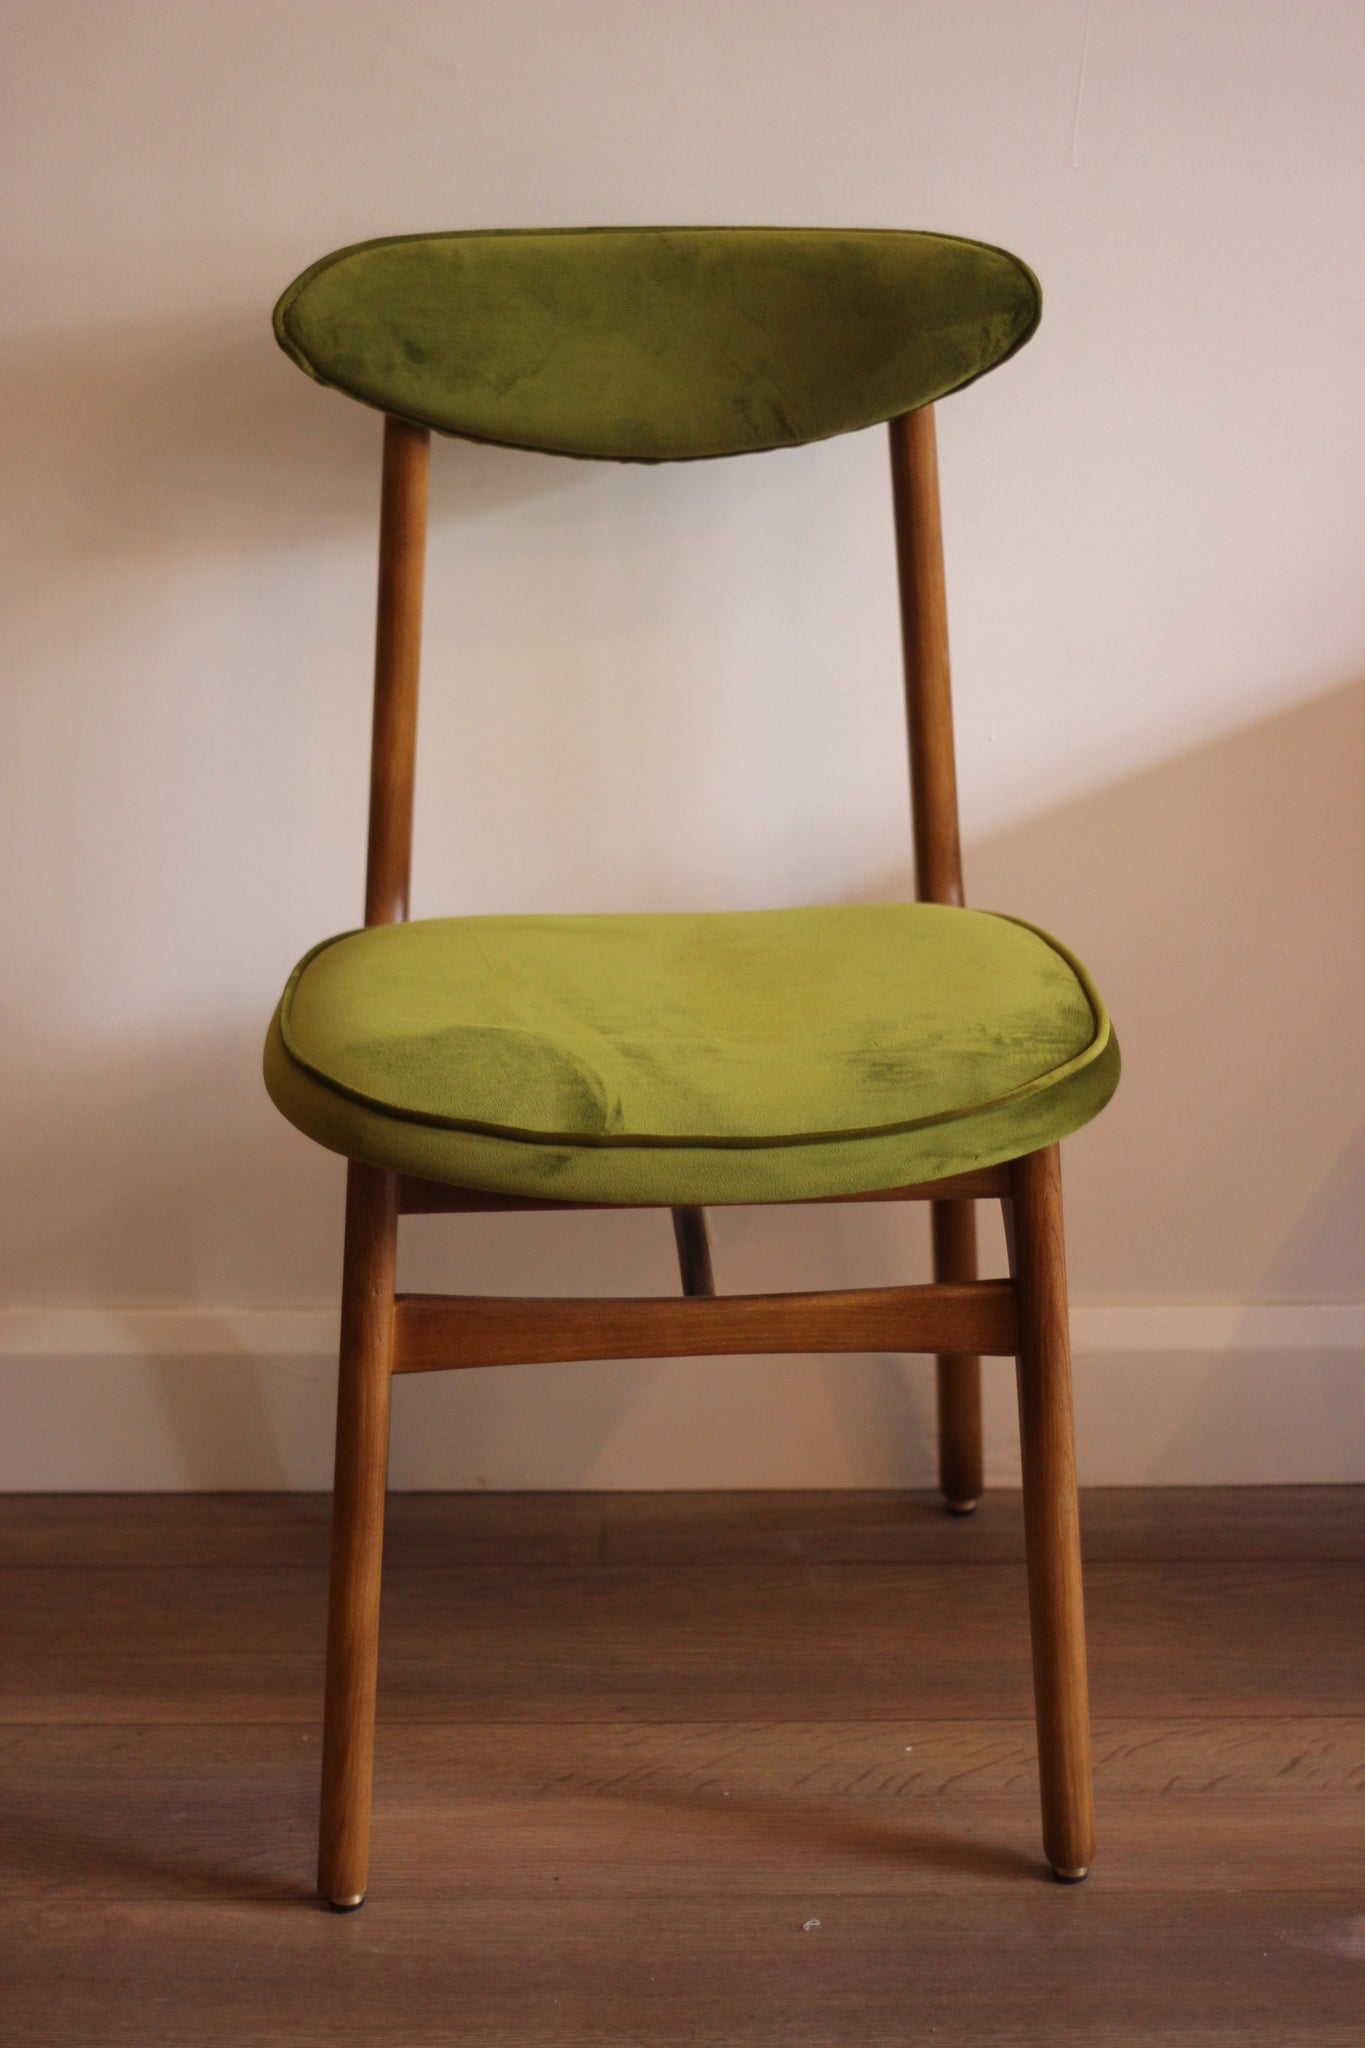 200-190 Dining Chair - Mid Century Design